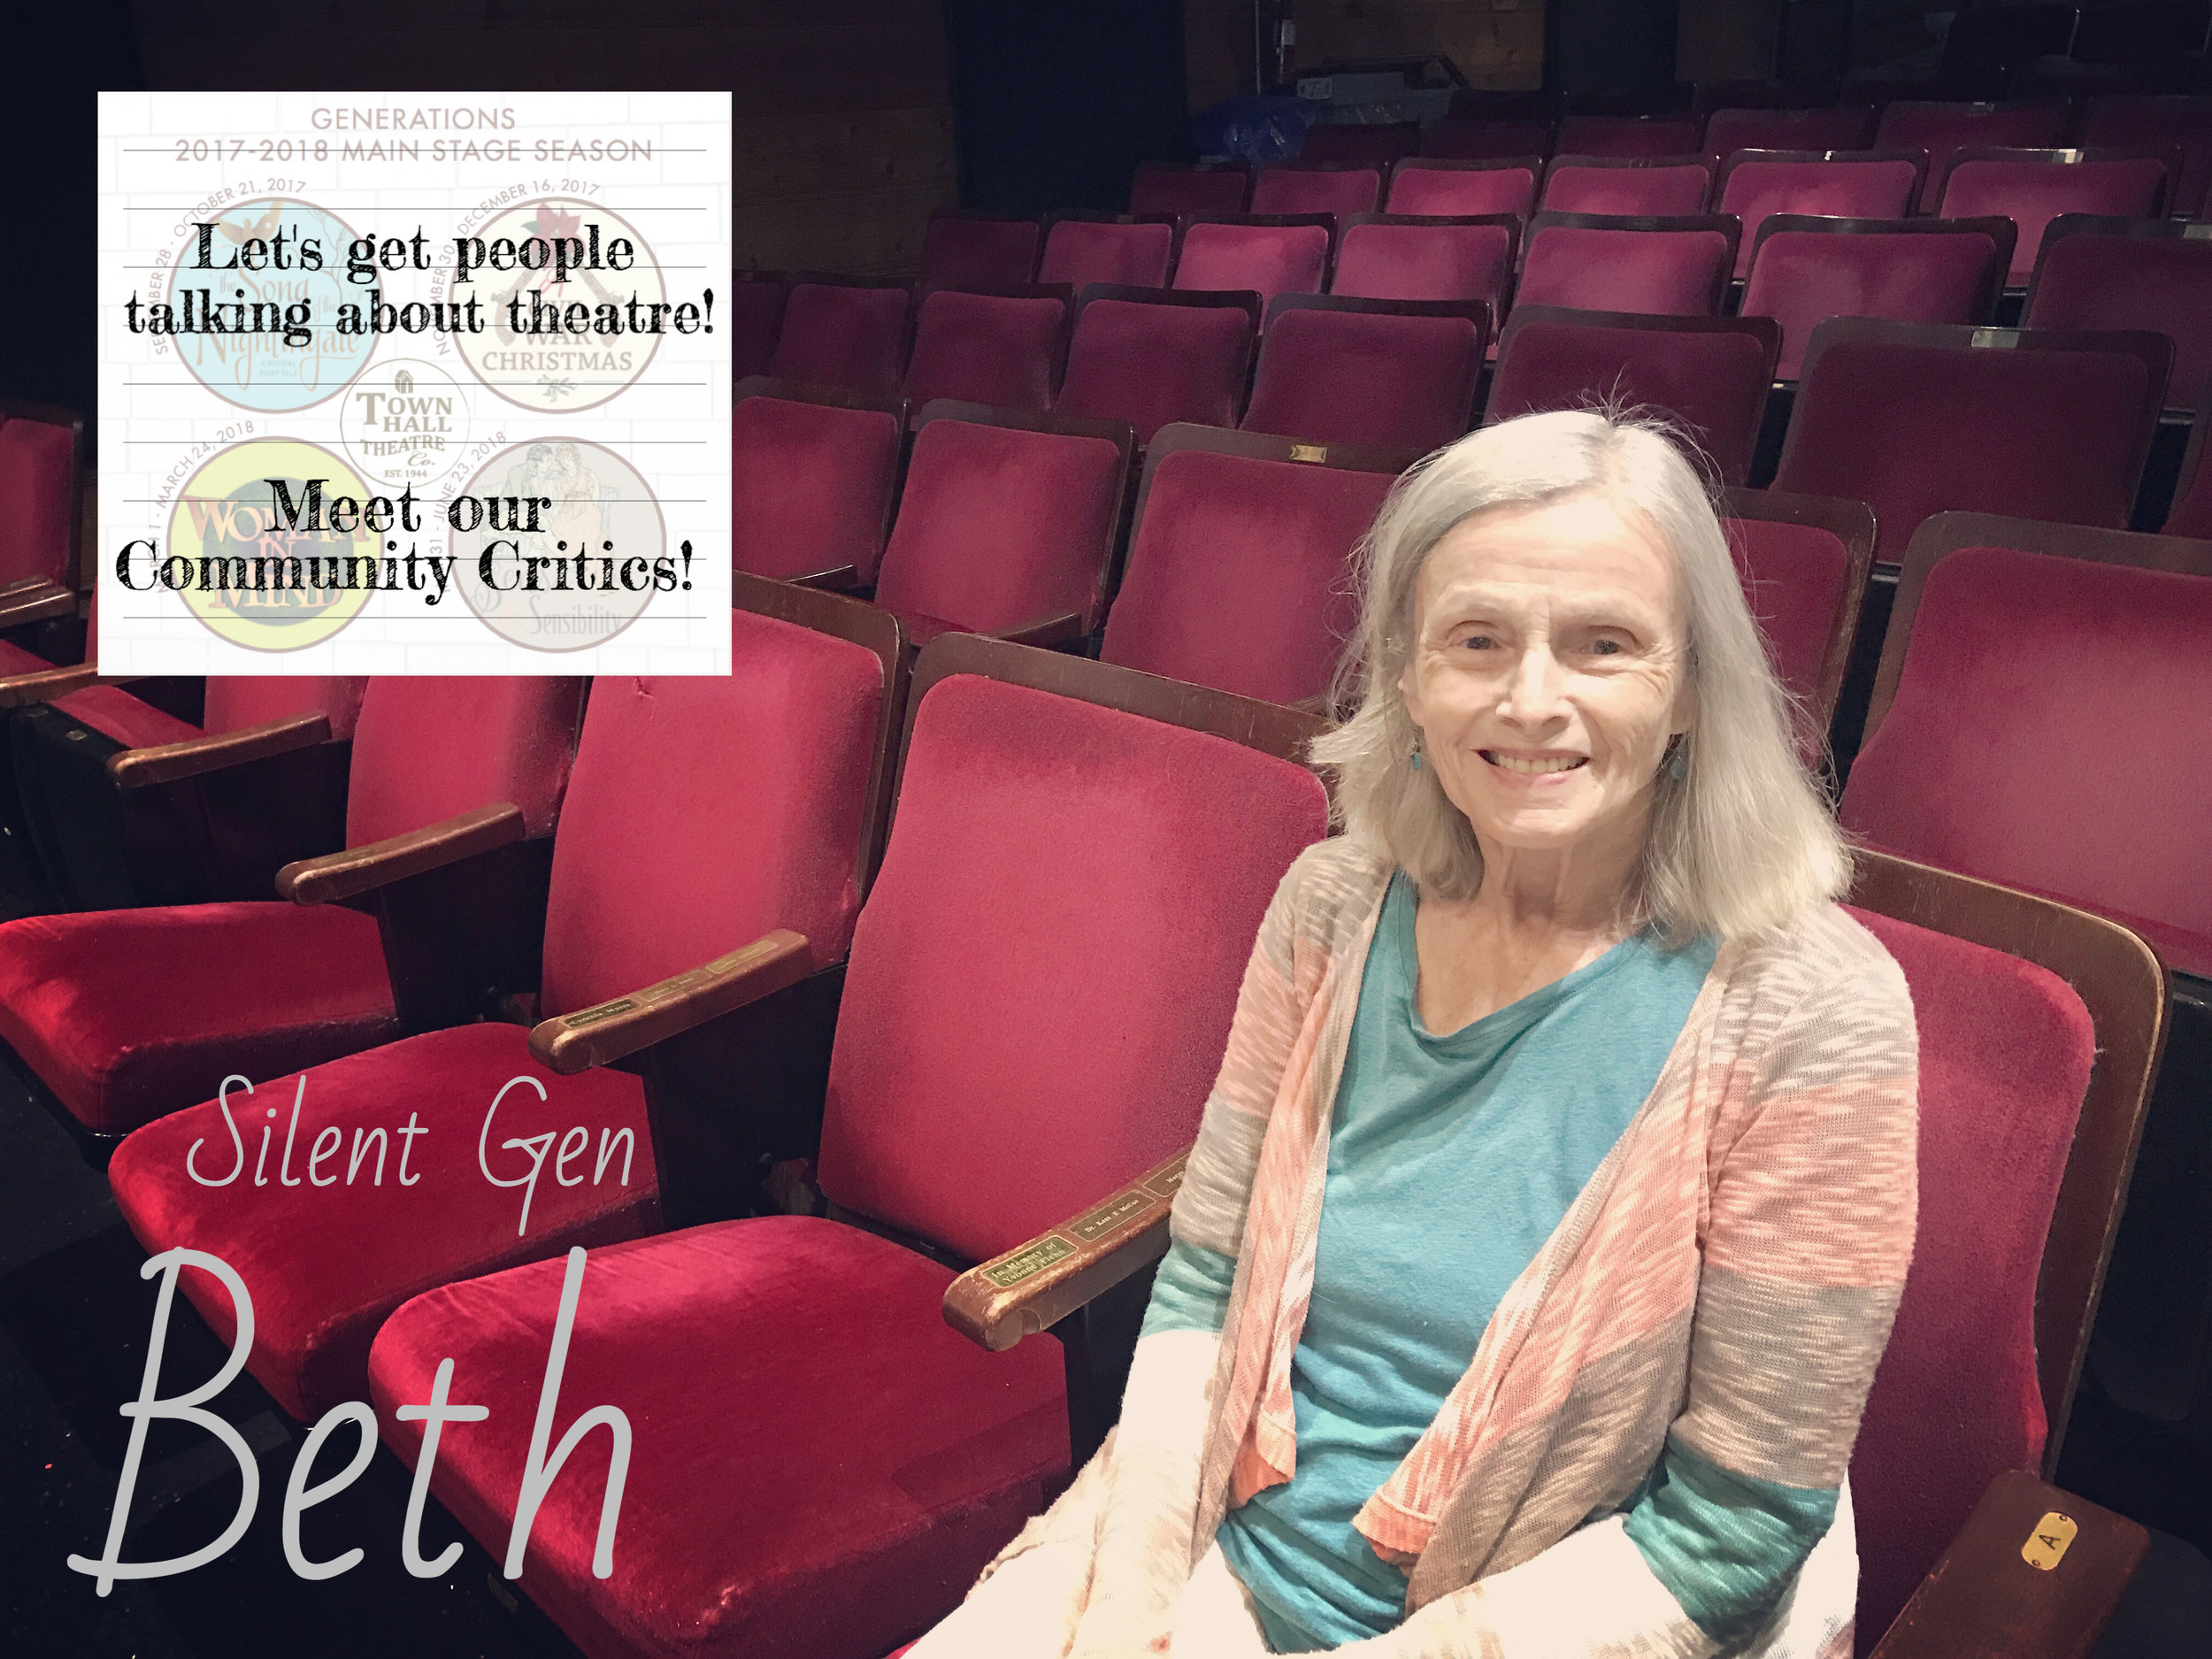 Beth - Bio coming soon!READ WHAT BETH HAS TO SAY ABOUT OUR UPCOMING SEASON!READ WHAT BETH HAS TO SAY ABOUT THE SONG OF THE NIGHTINGALE!READ WHAT BETH HAS TO SAY ABOUT A CIVIL WAR CHRISTMAS!READ WHAT BETH HAS TO SAY ABOUT WOMAN IN MIND!READ WHAT BETH HAS TO SAY ABOUT SENSE AND SENSIBILITY!